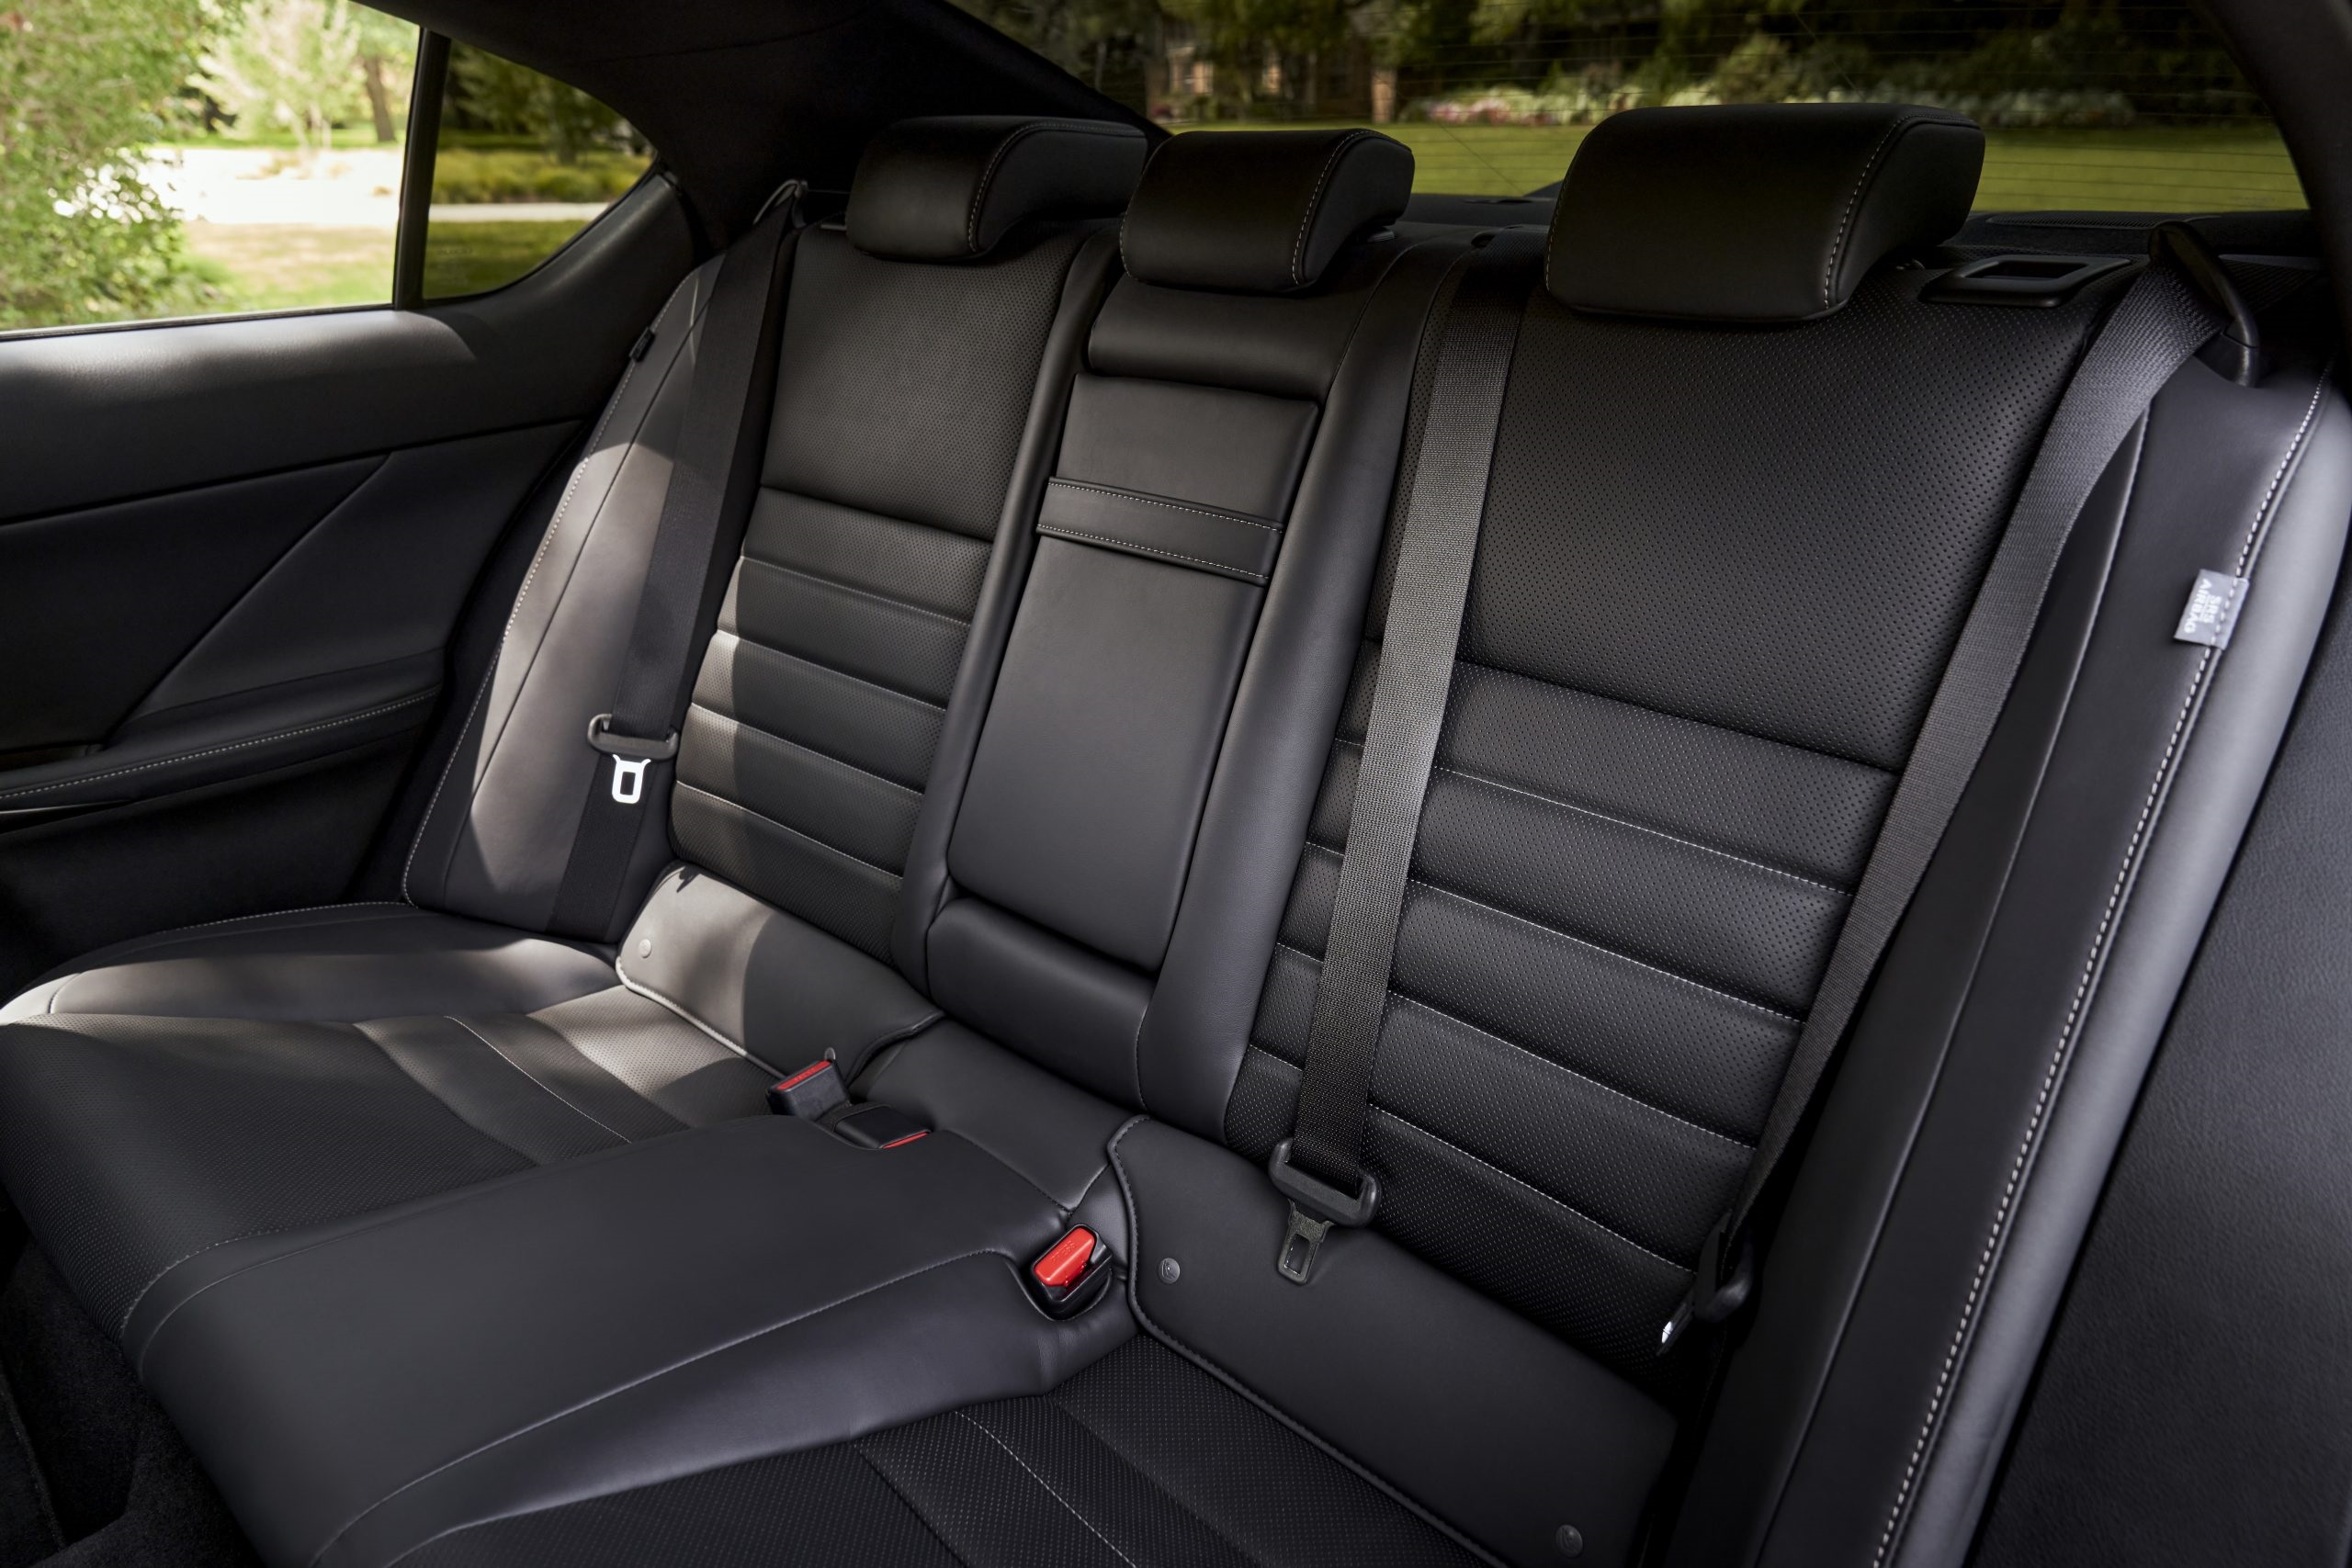 The back seats in the 2021 Lexus IS 350 F Sport